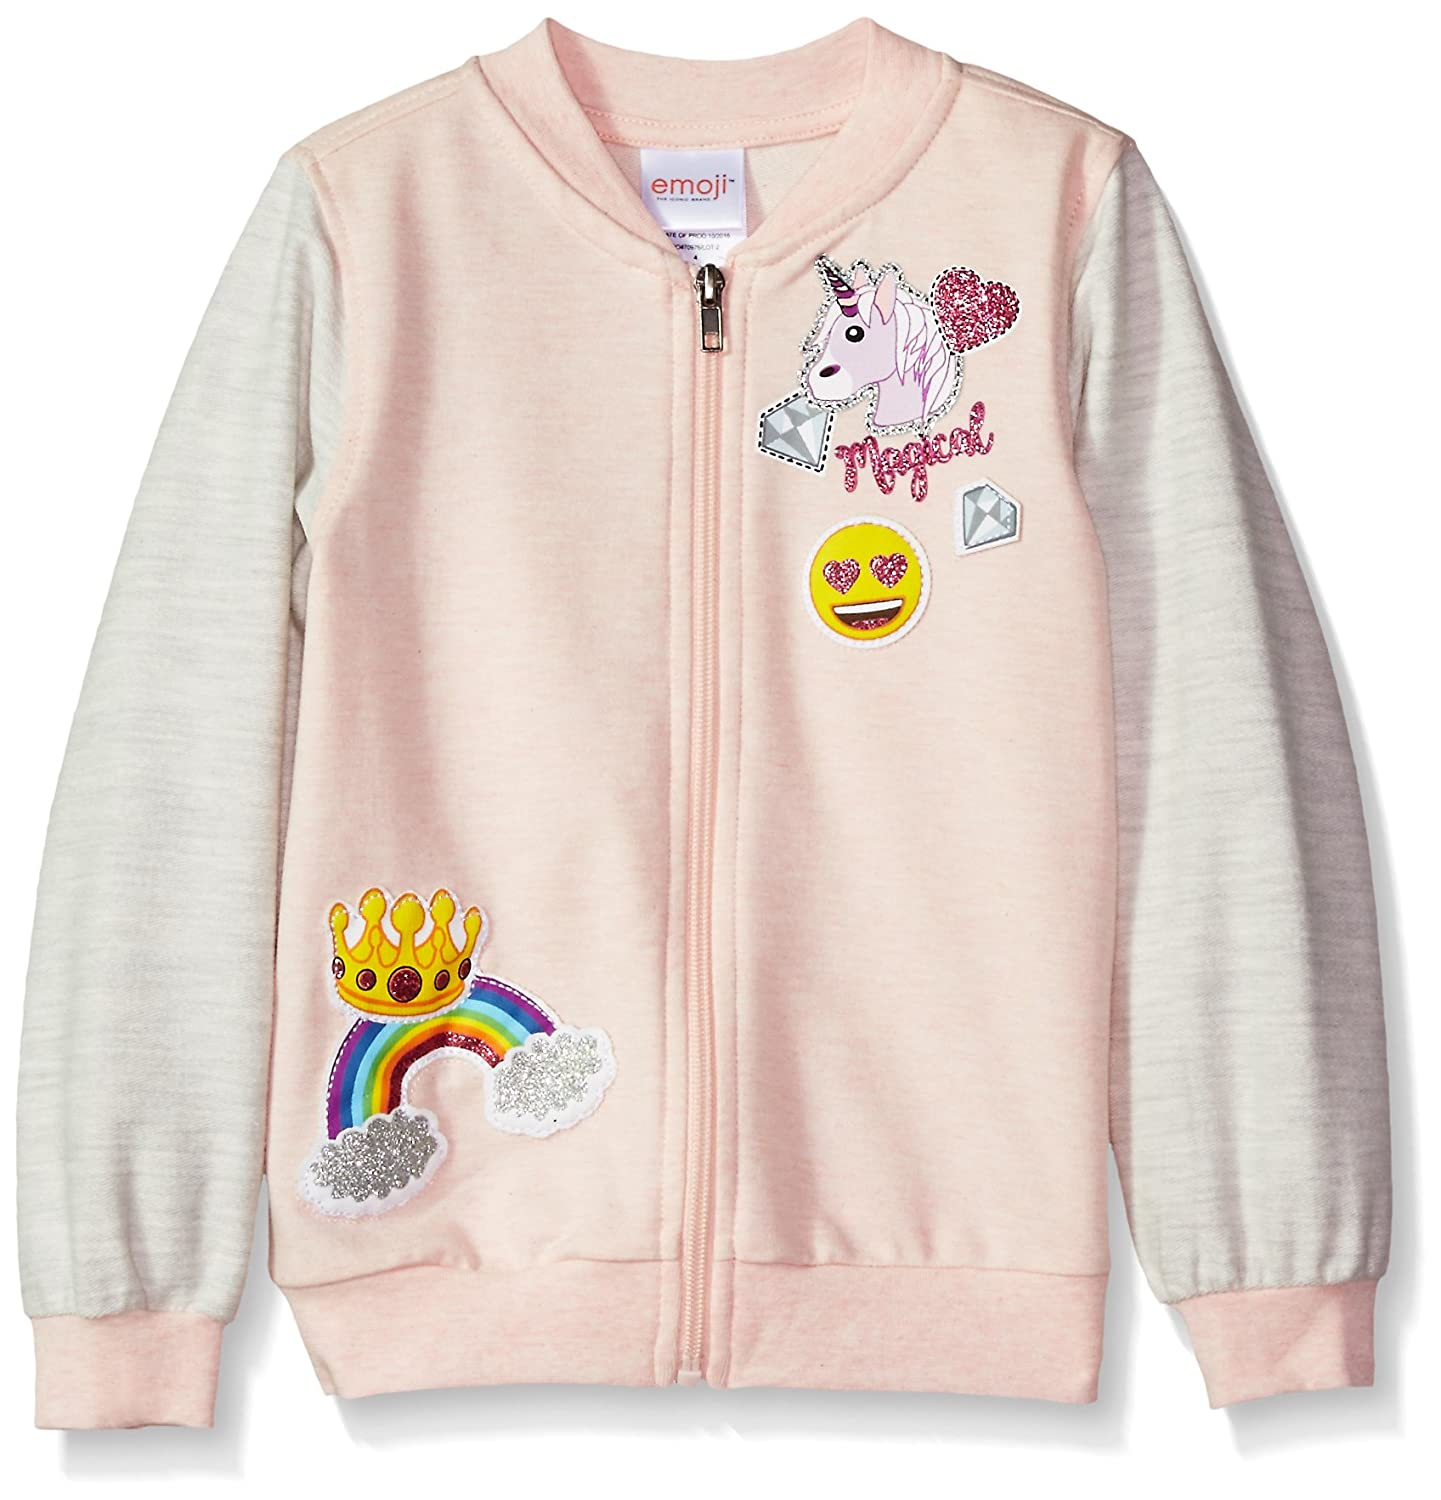 Emoji girls Little Girls Varsity Jacket With Glitter Patches Soft Pink 4 737209EJB